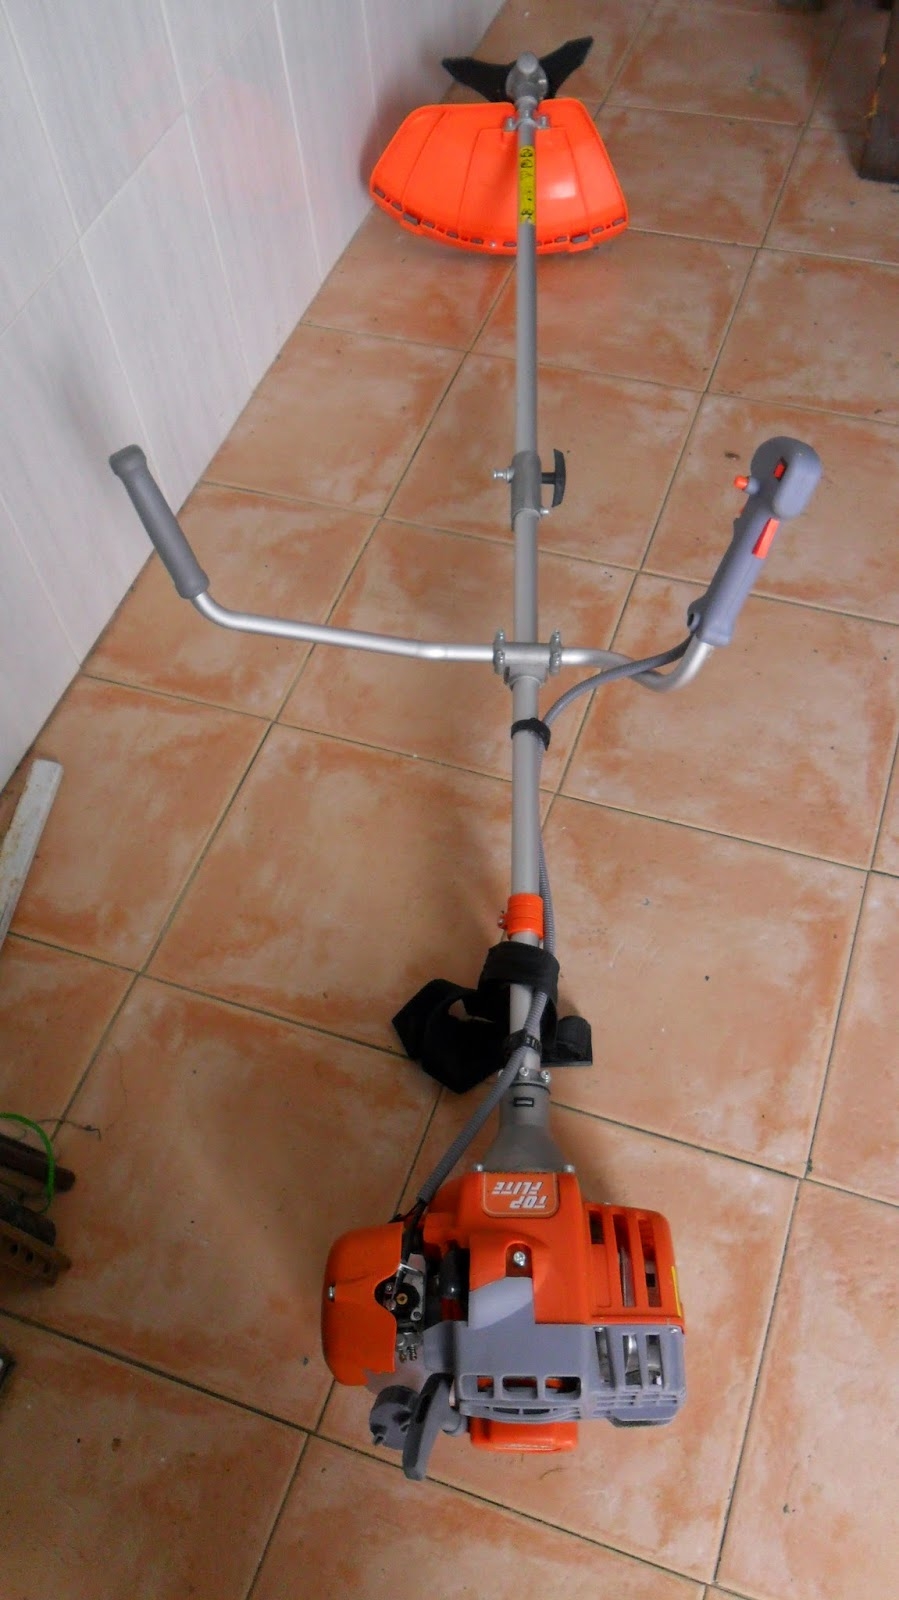 Digame: For Sale a garden strimmer